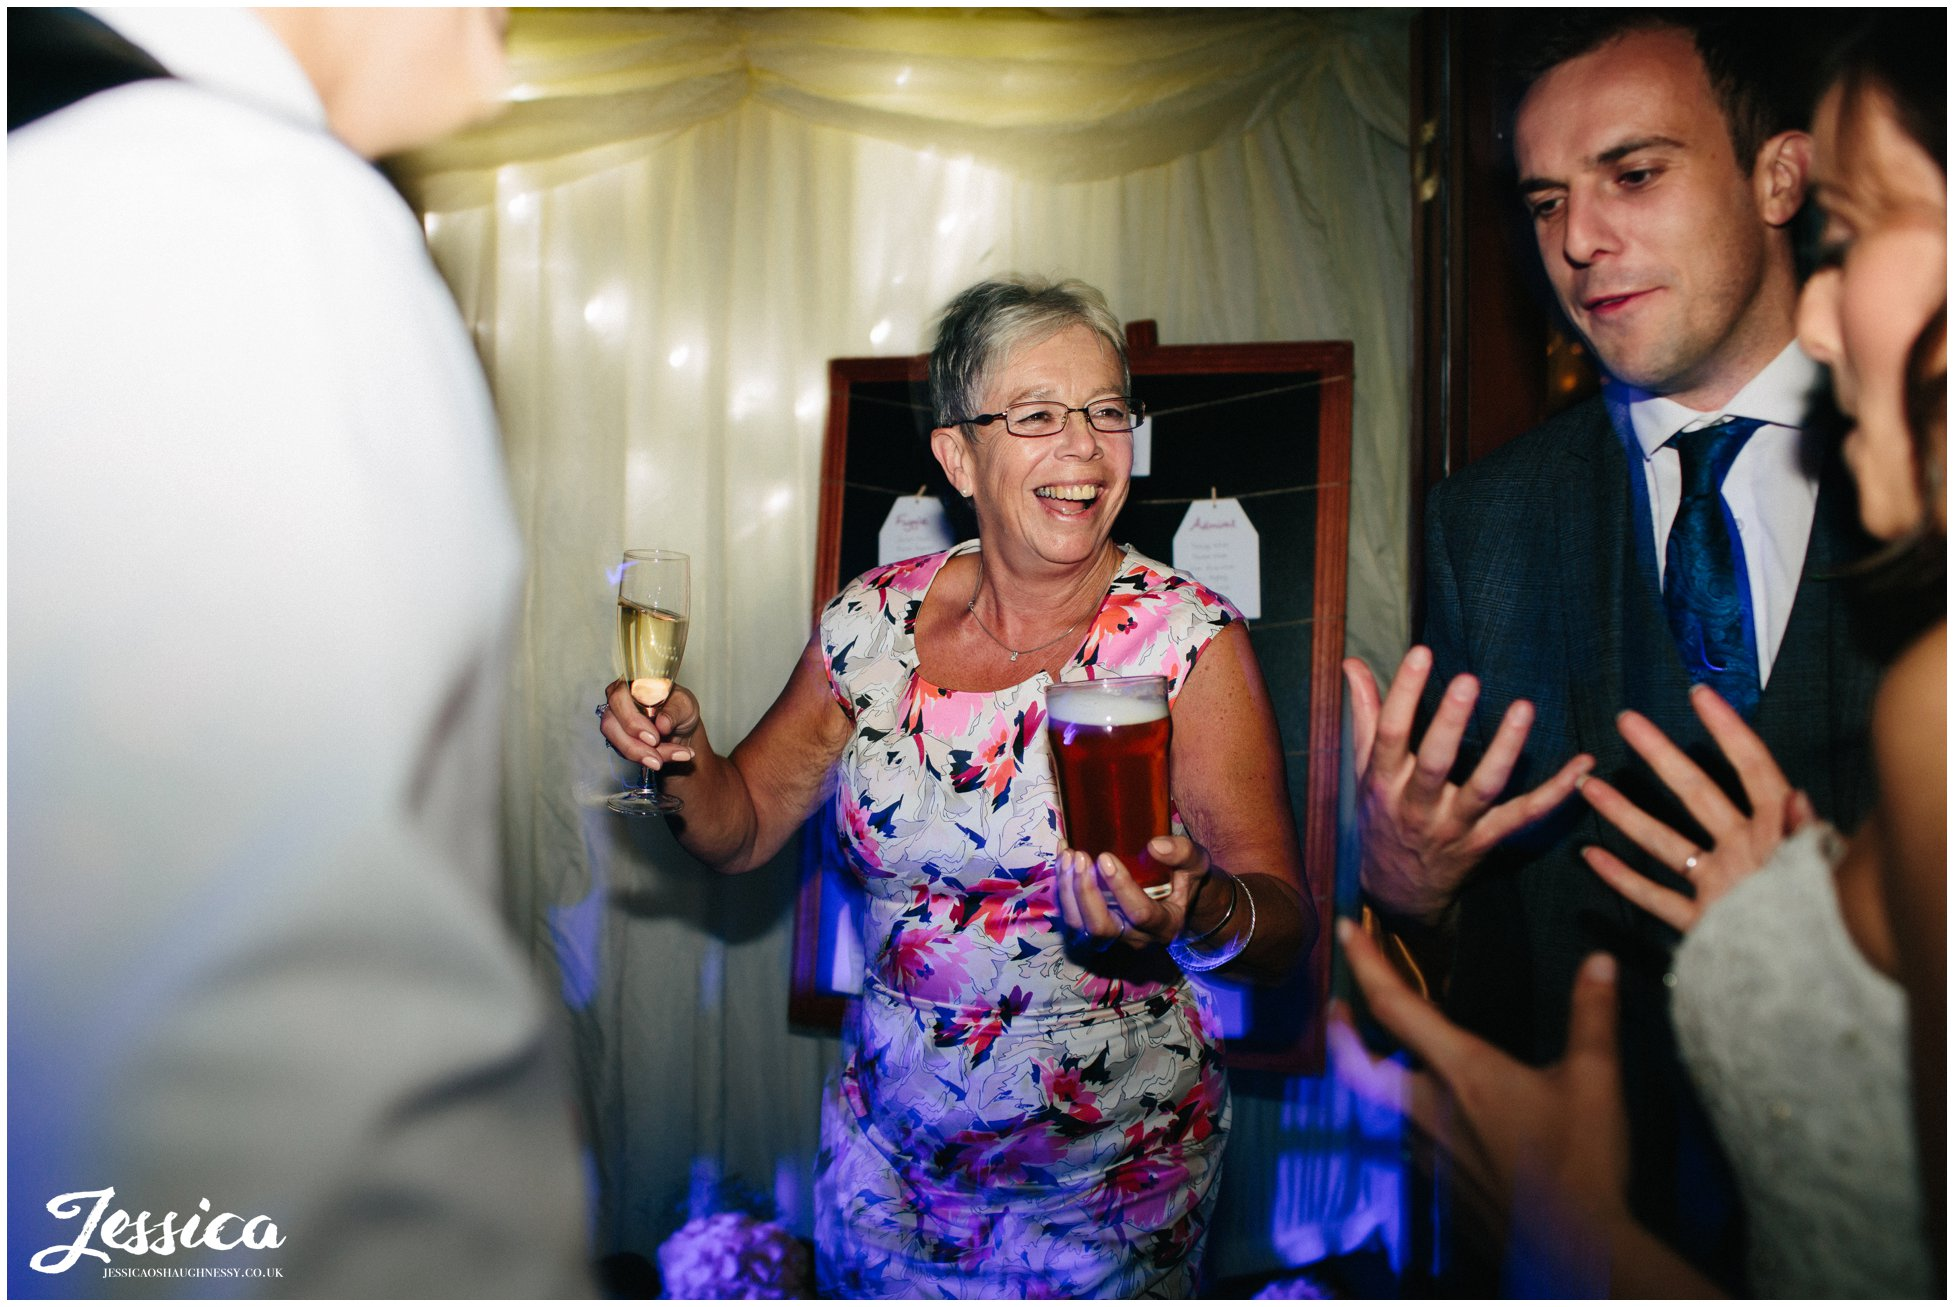 mother of the groom dancing at her sons wedding reception in chester